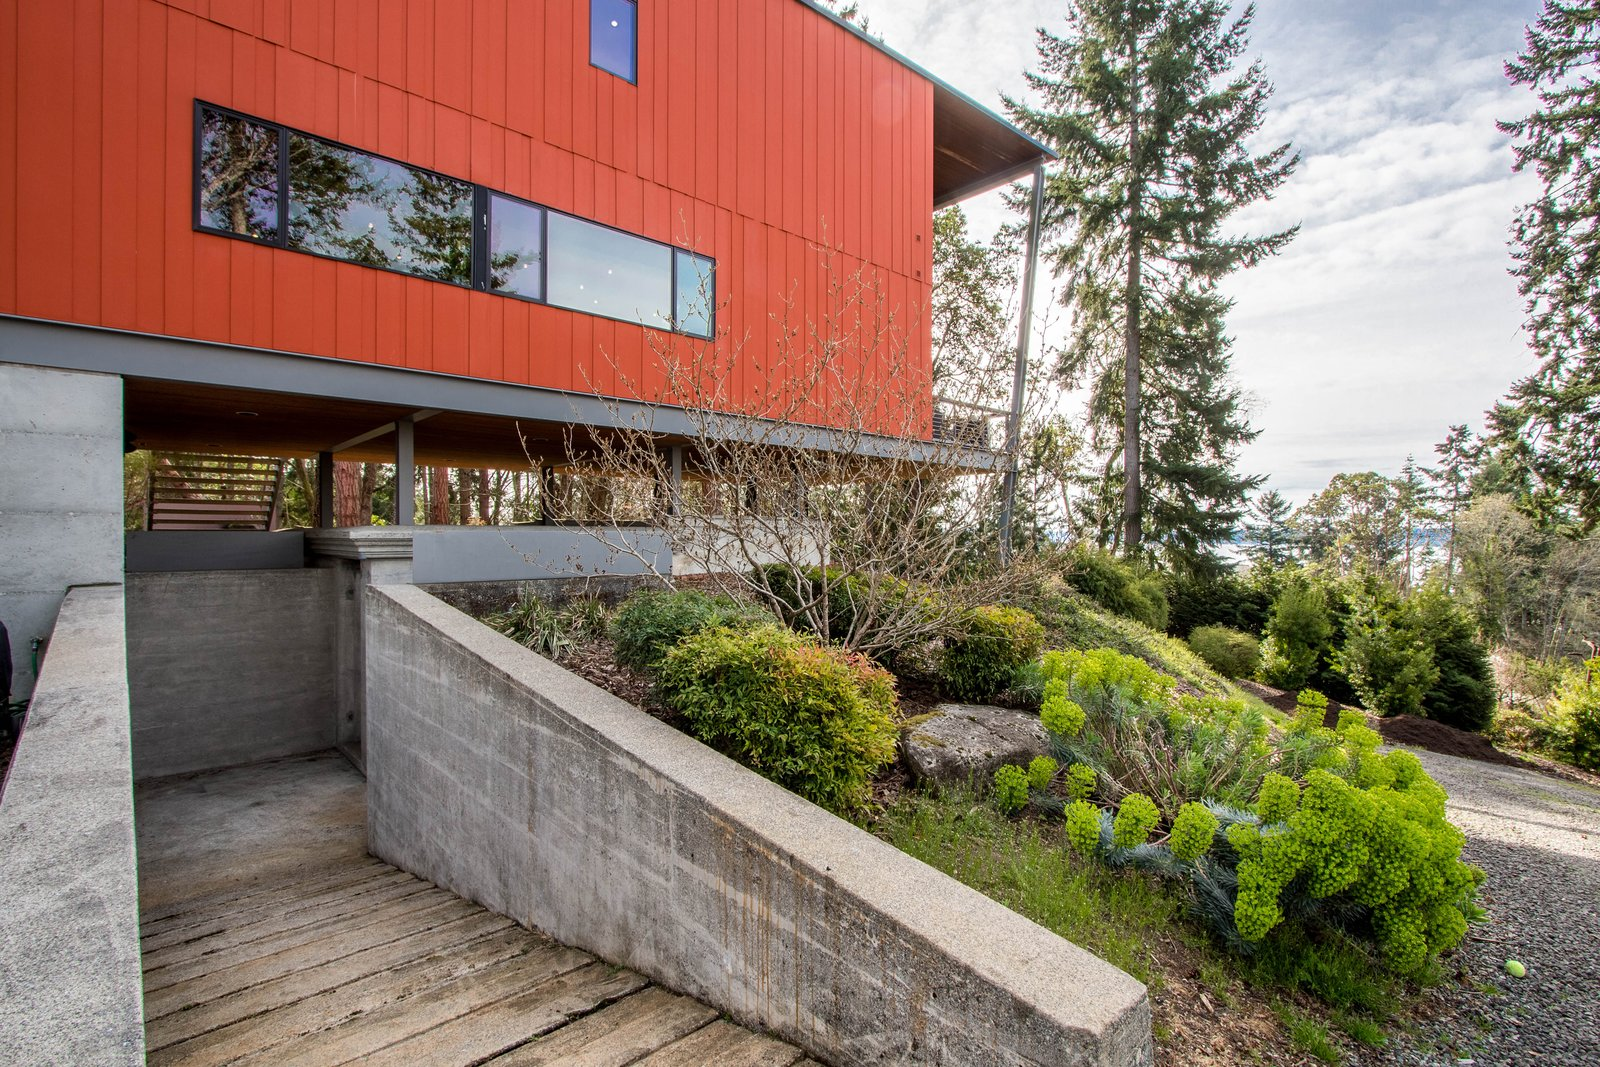 Exterior The bunker below the home currently serves as a storage area.  Photo 7 of 8 in A Cantilevered Bainbridge Island Home Set Atop a Historic Bunker Lists For $1.73M from Stunning Steel-Frame Construction Cantilevered atop Historic Bunker For Sale